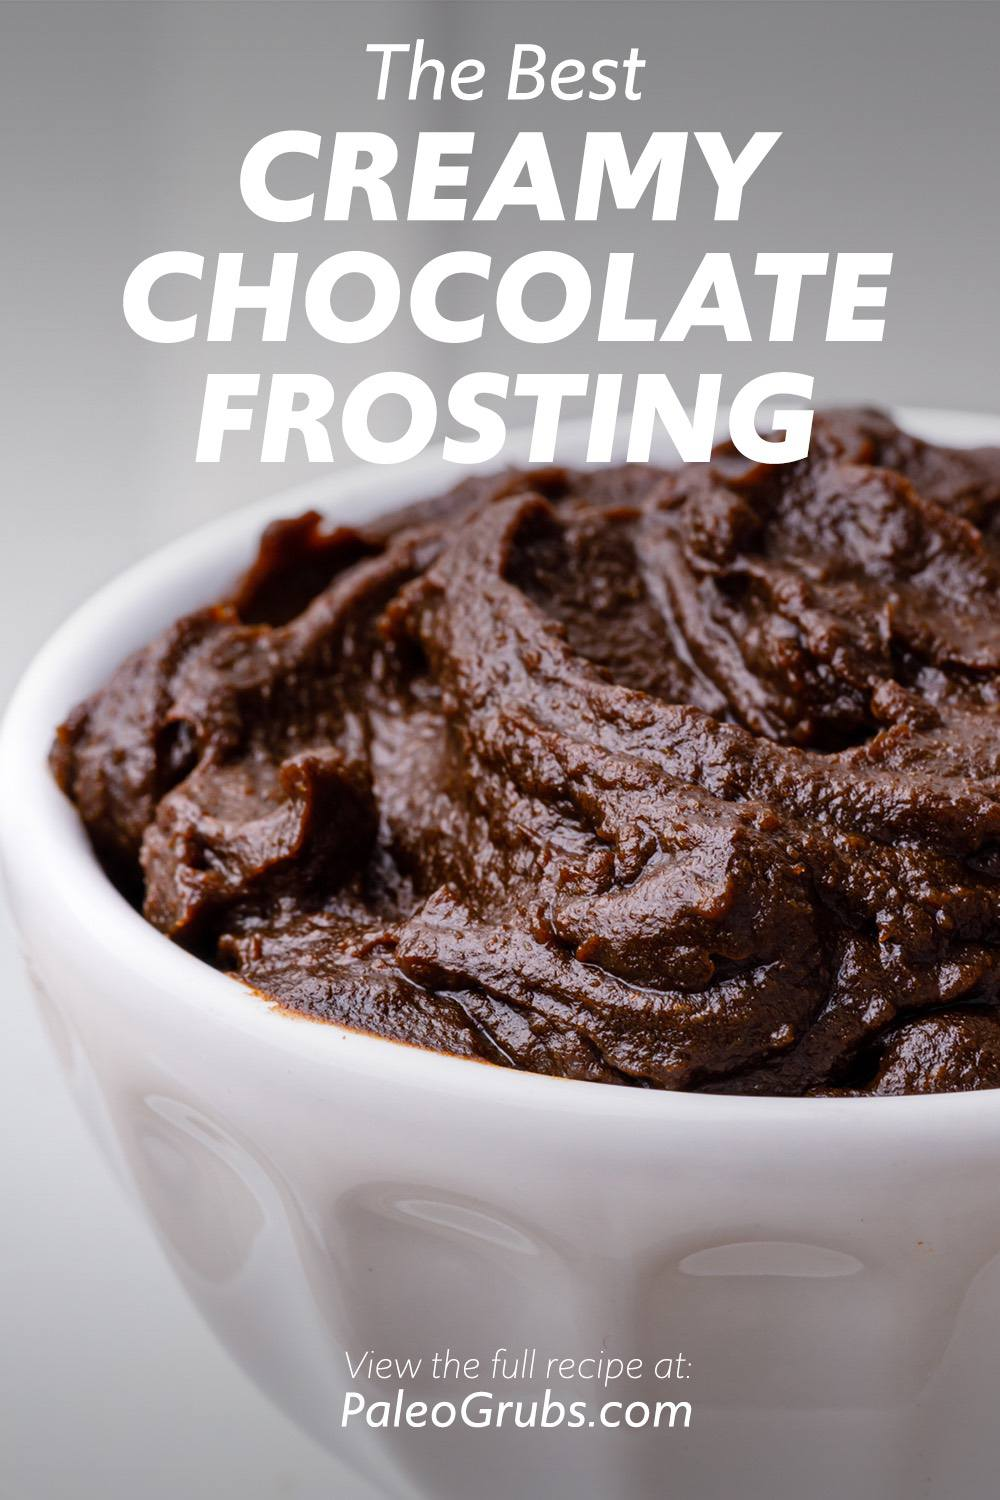 The Best Creamy Chocolate Frosting for Paleo Brownies and Cakes